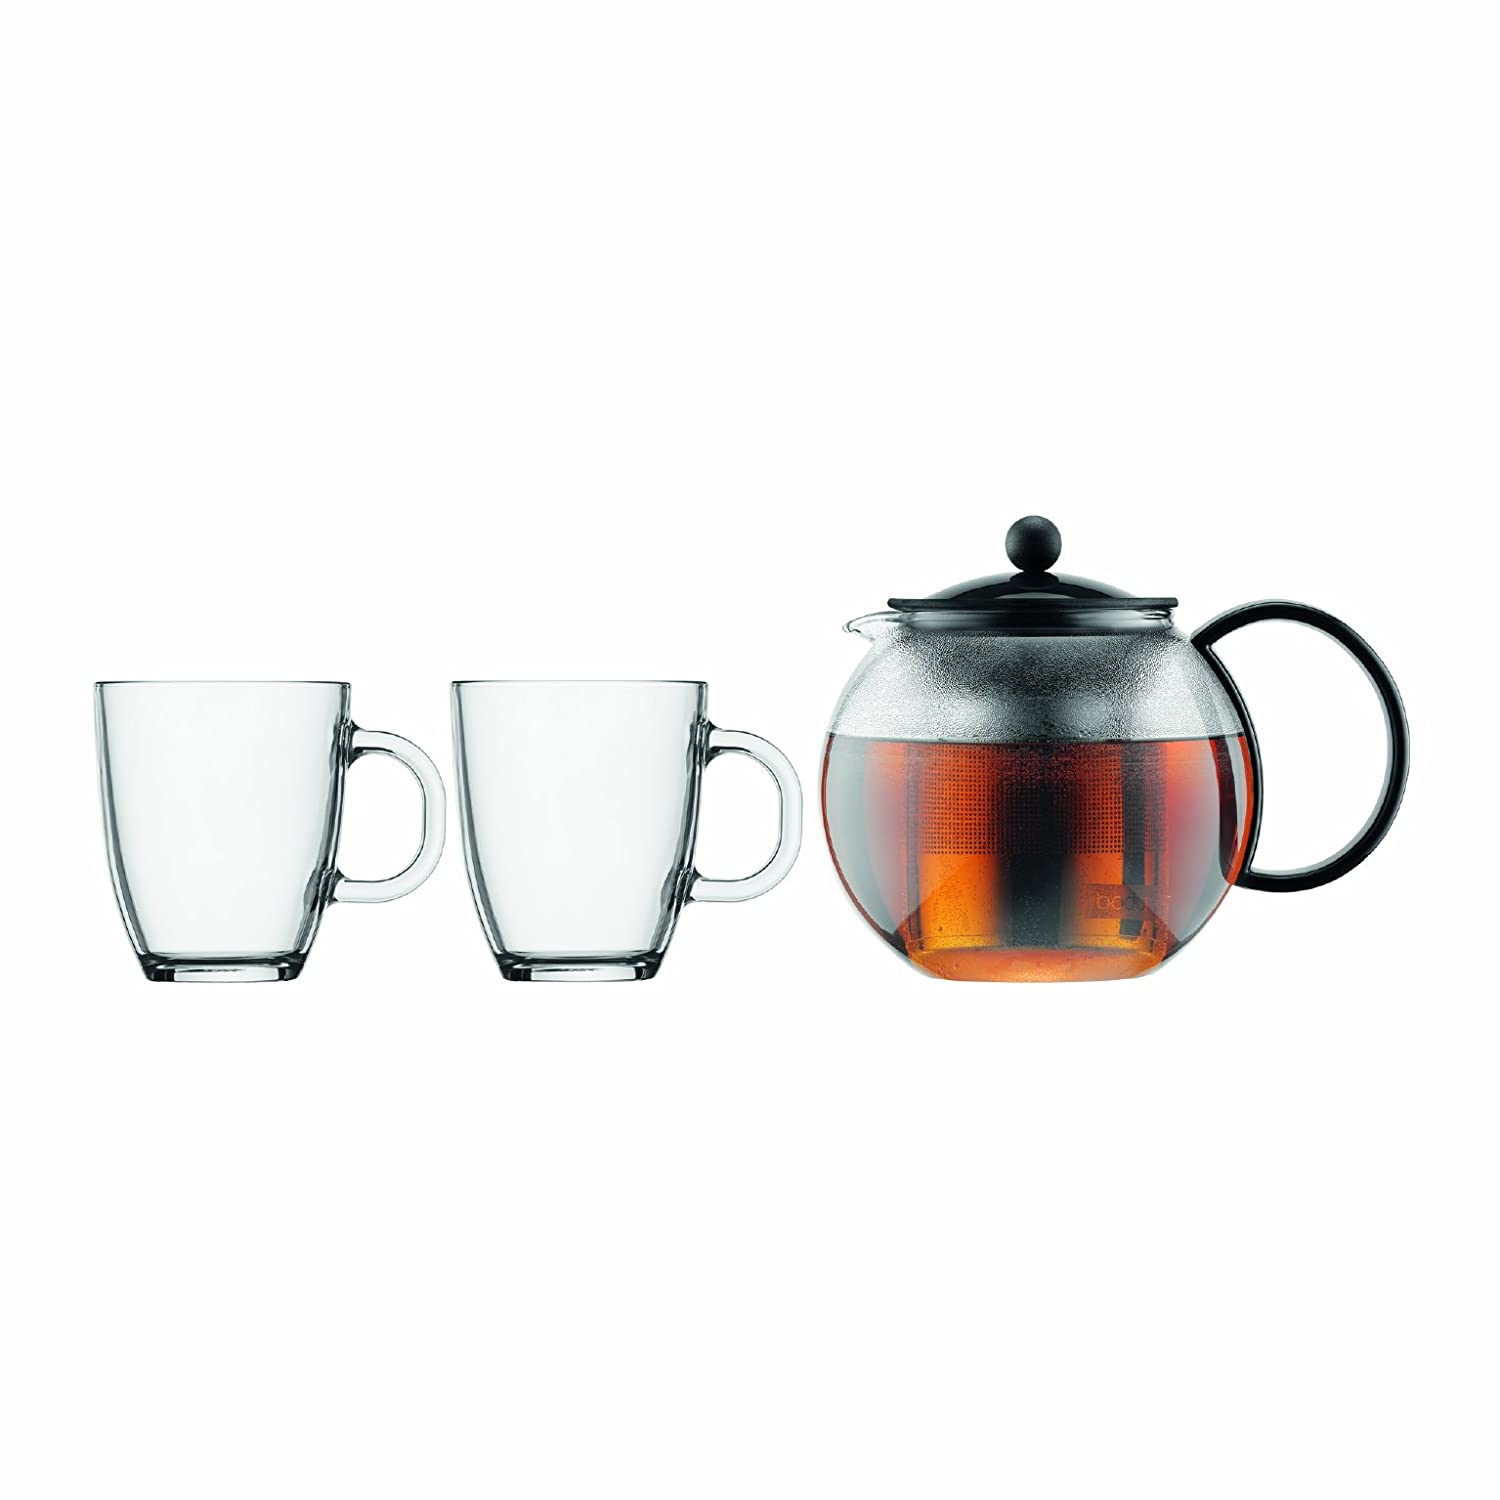 Bodum 1812-01 ASSAM Tea Maker (French Press System, Permanent Stainless Steel Filter, 0.5 L/17 oz) - Black/Transparent 1812-01_1